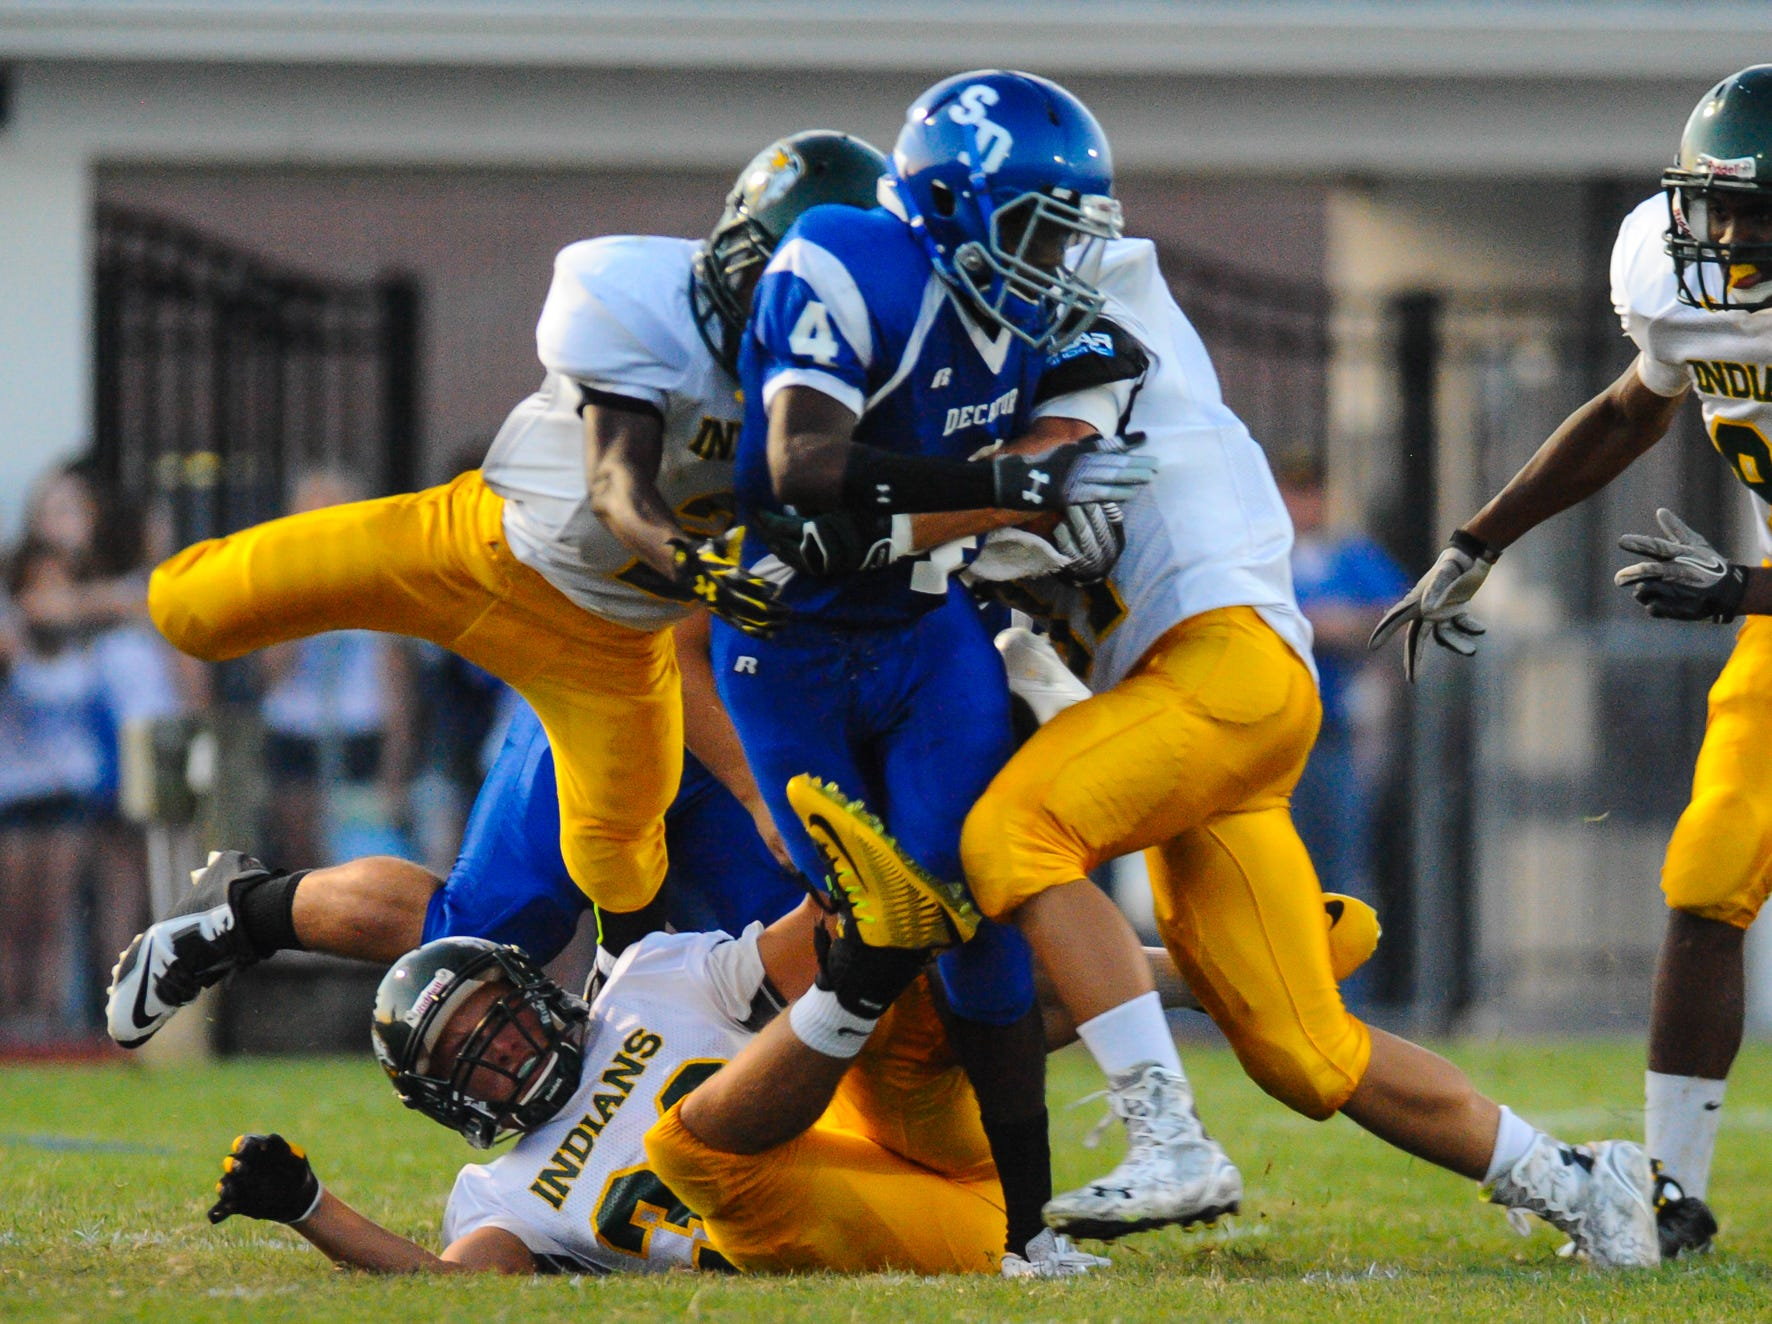 Stephen Decatur's Dontae Baines had a late touchdown in the Seahawks' 56-41 loss to Queen Anne's on Friday.